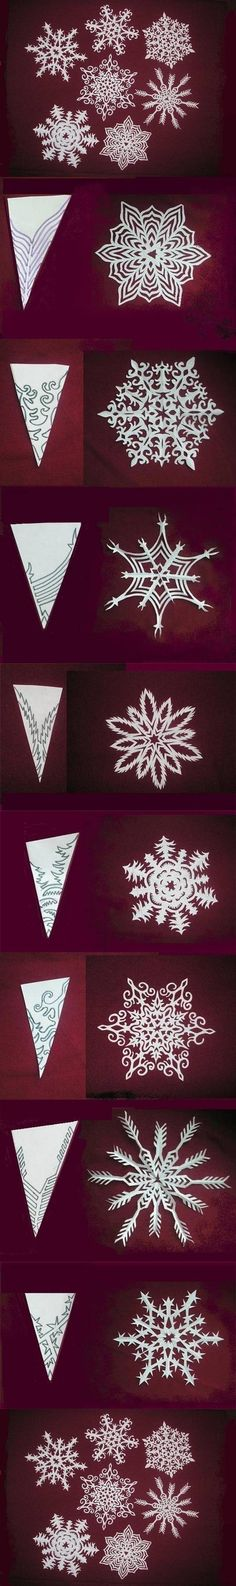 DIY Snowflakes Paper Pattern Tutorial via usefuldiy.com                                                                                                                                                     More